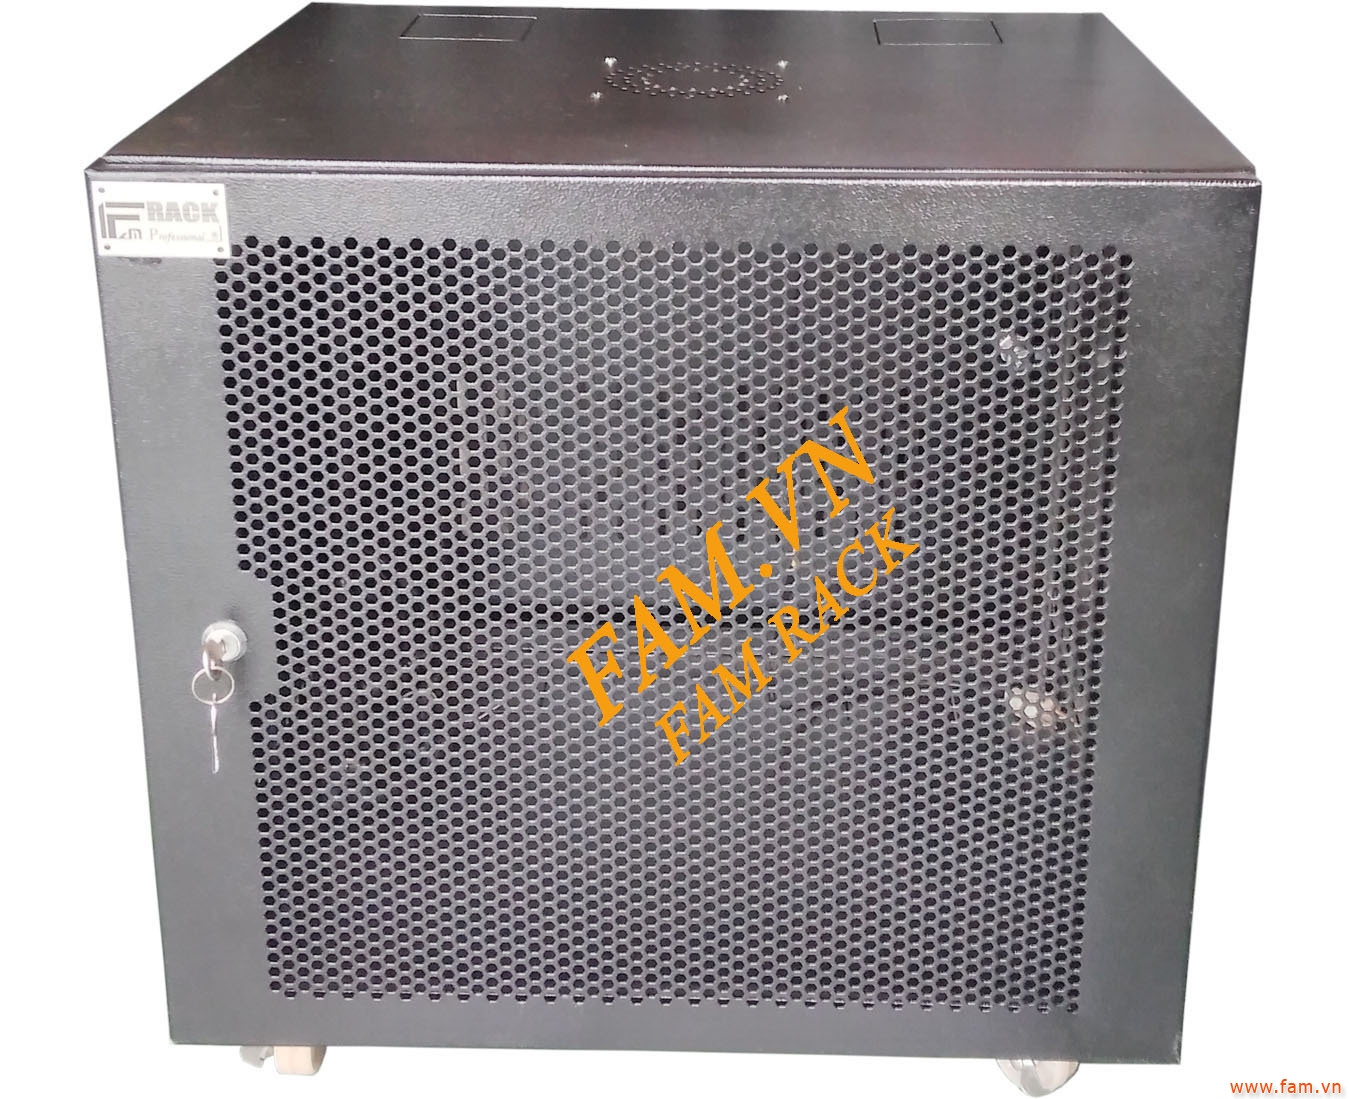 Tủ Rack 10U-D500 Tower - FAMRACK 10U500